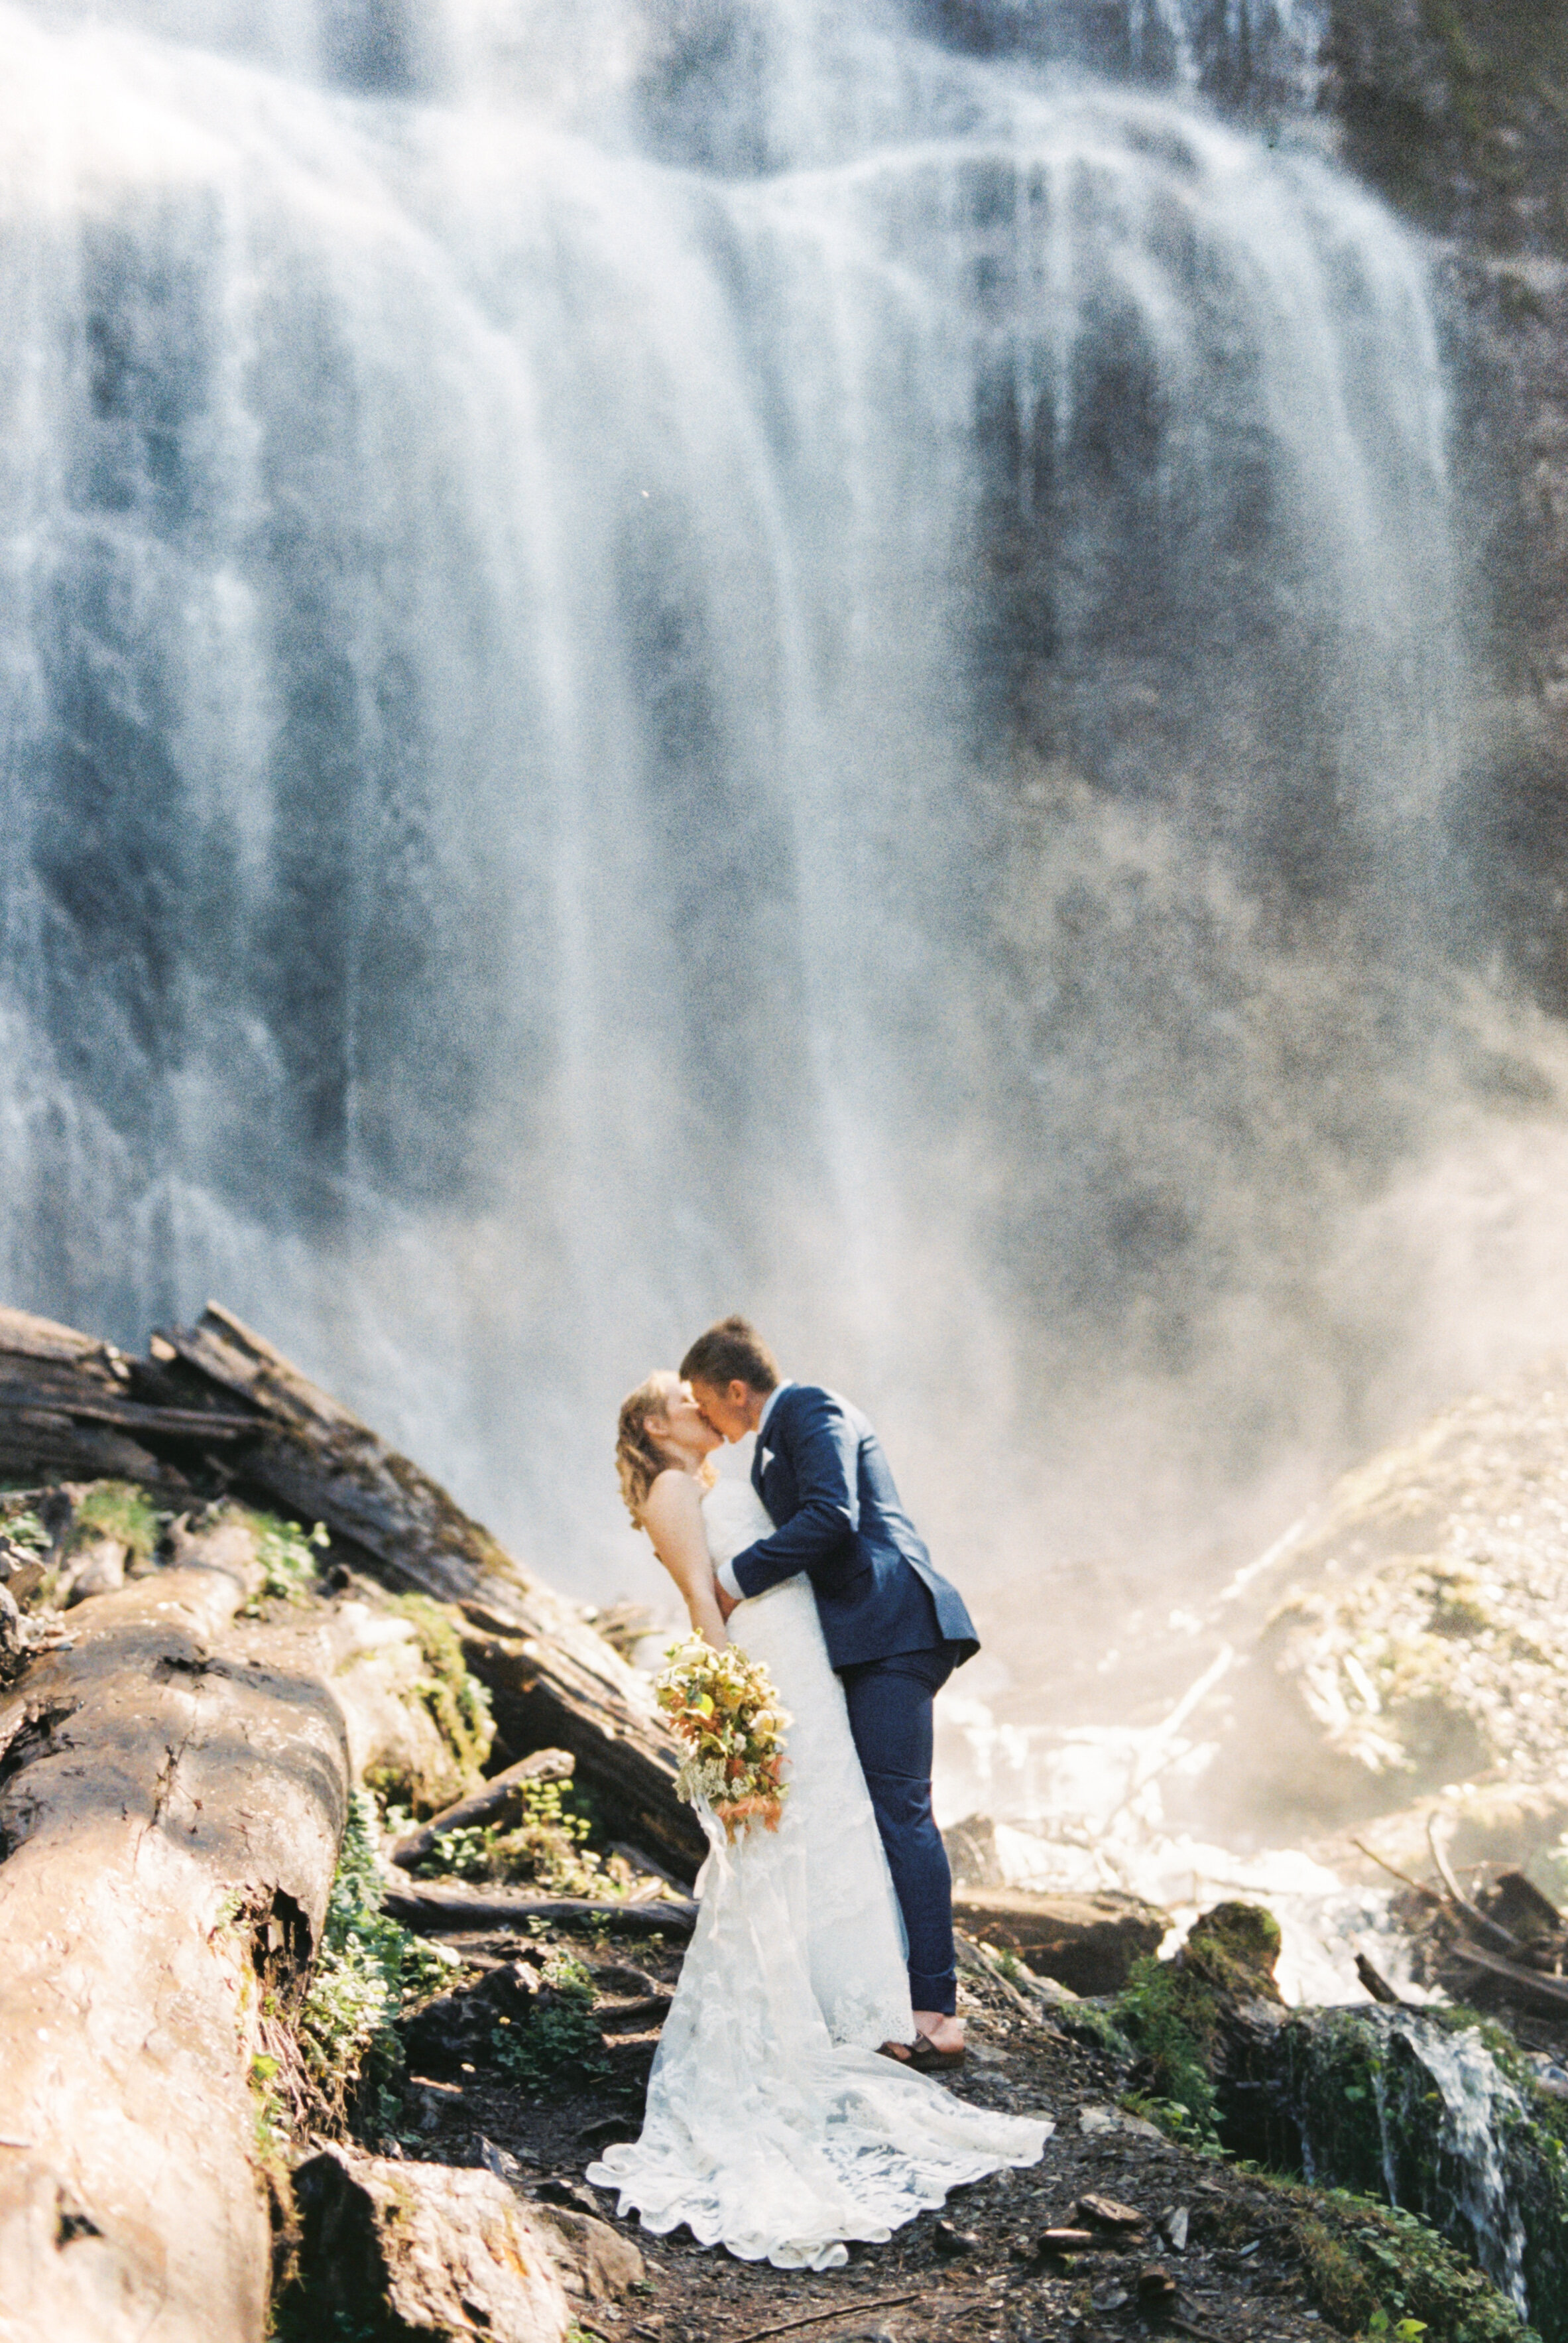 Stunning Elopement-style wedding Featuring Waterfall Kisses & Helicopter Adventures // Kathryn and Richard - on the Bronte Bride Blog